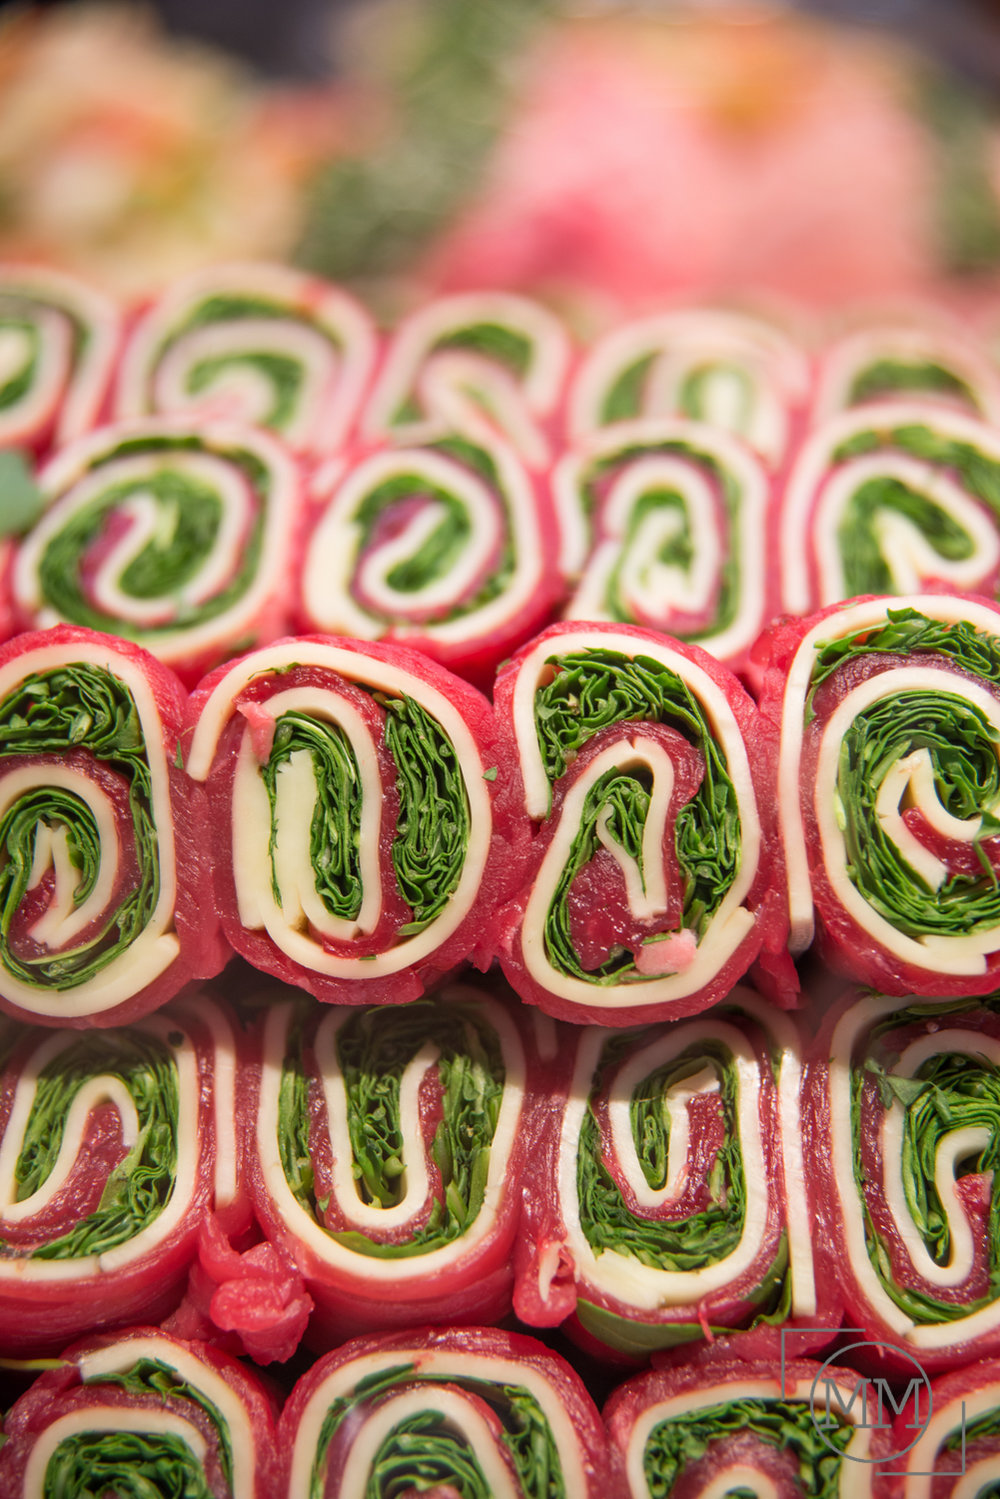 Steak, Provolone and Spinach perfectly wrapped.